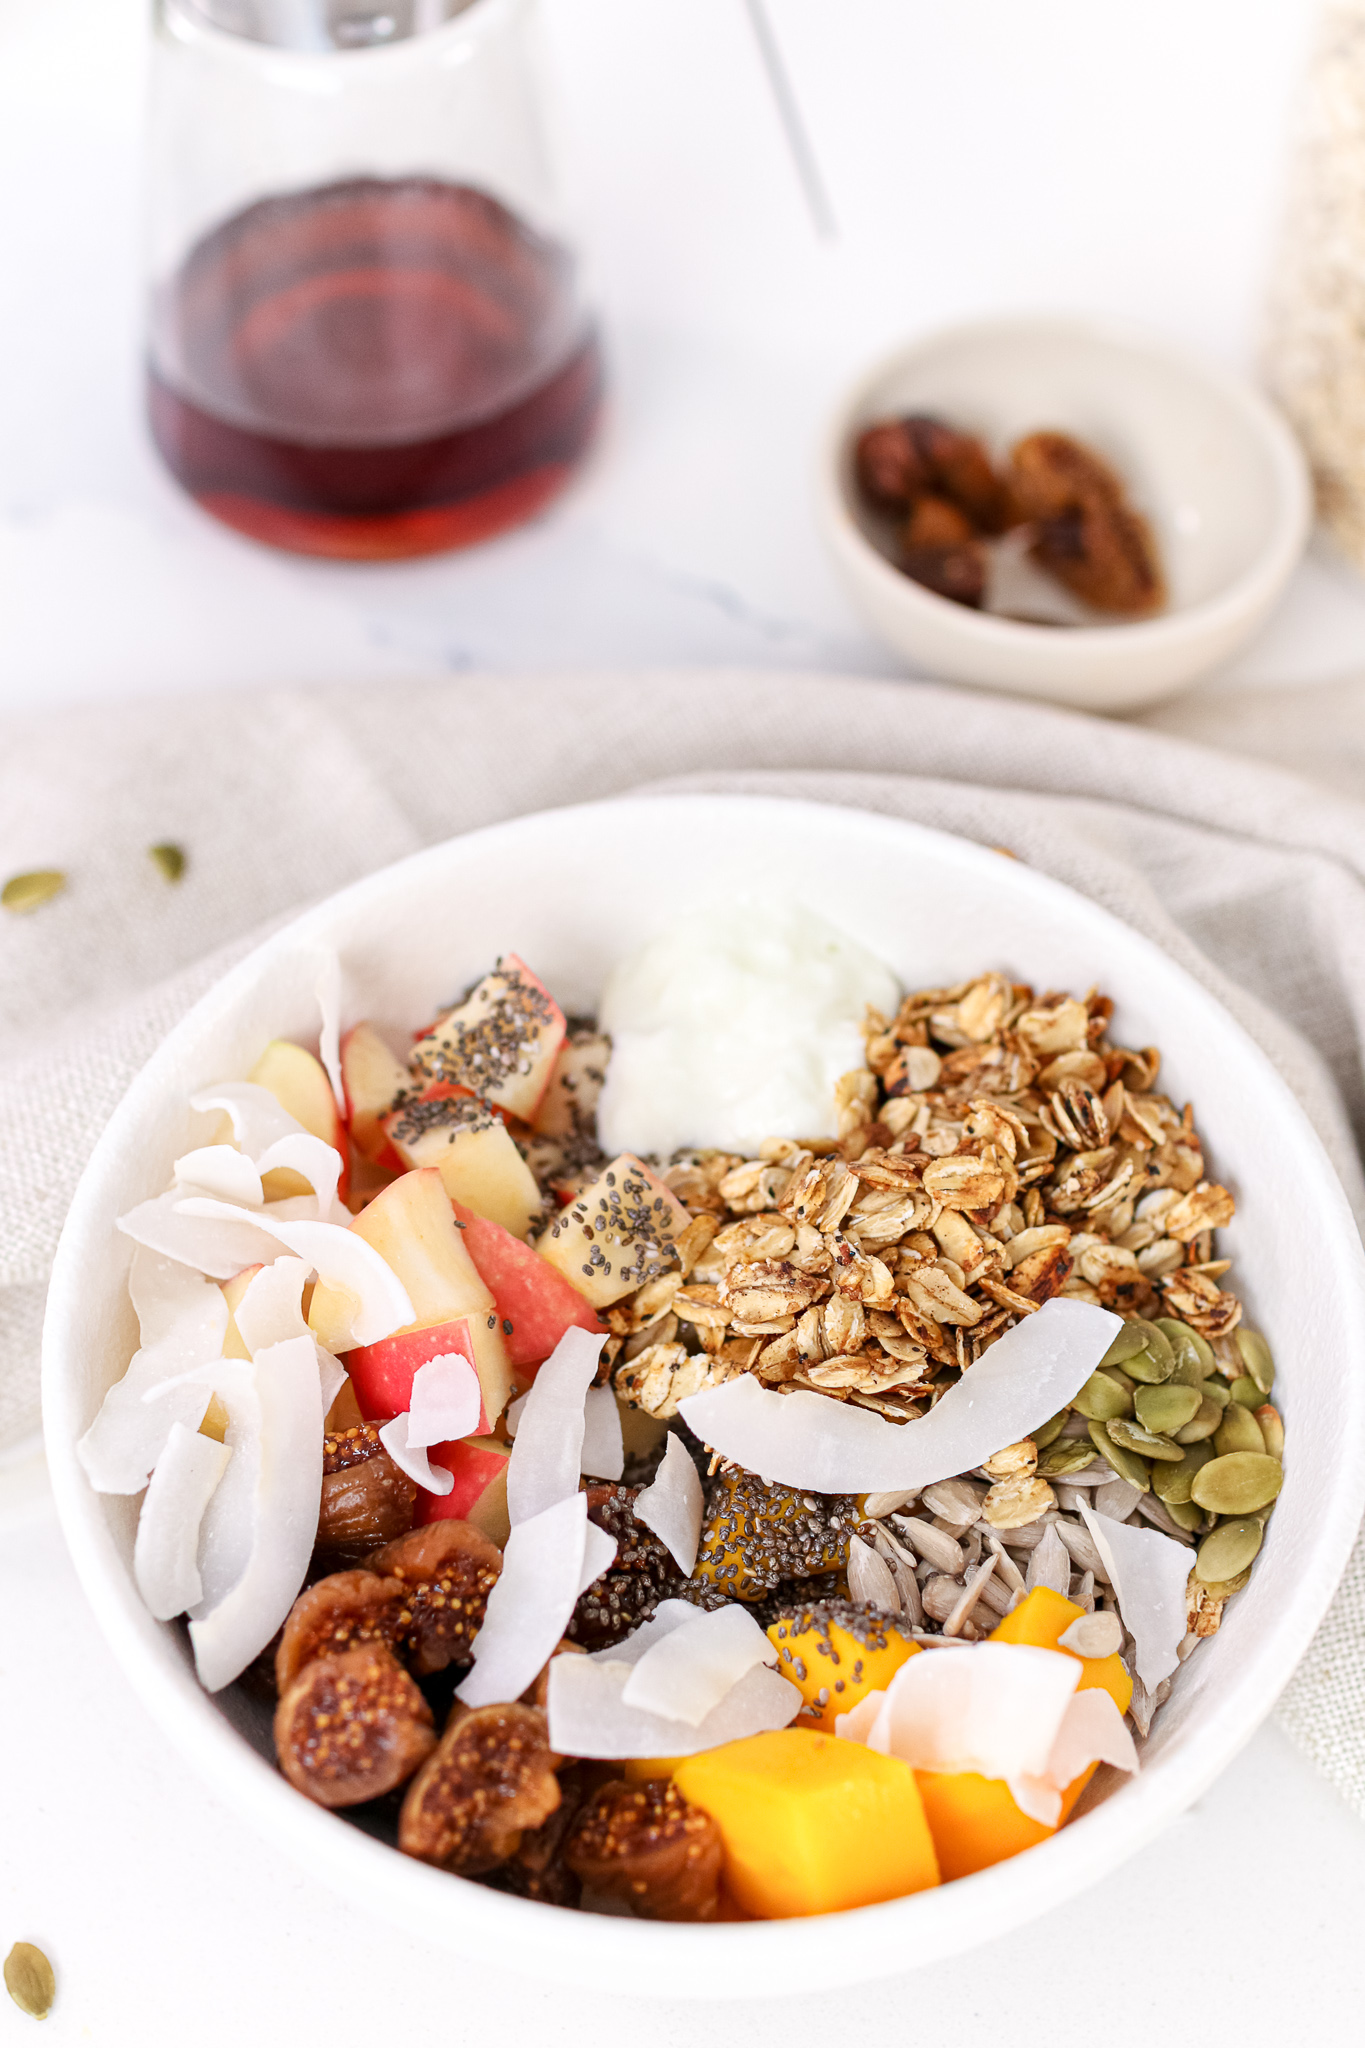 A vibrant and delicious yogurt fruit & granola bowl that is ready in 5 minutes, and packed with protein, fibre and healthy fats to keep you fuelledthroughout the day!